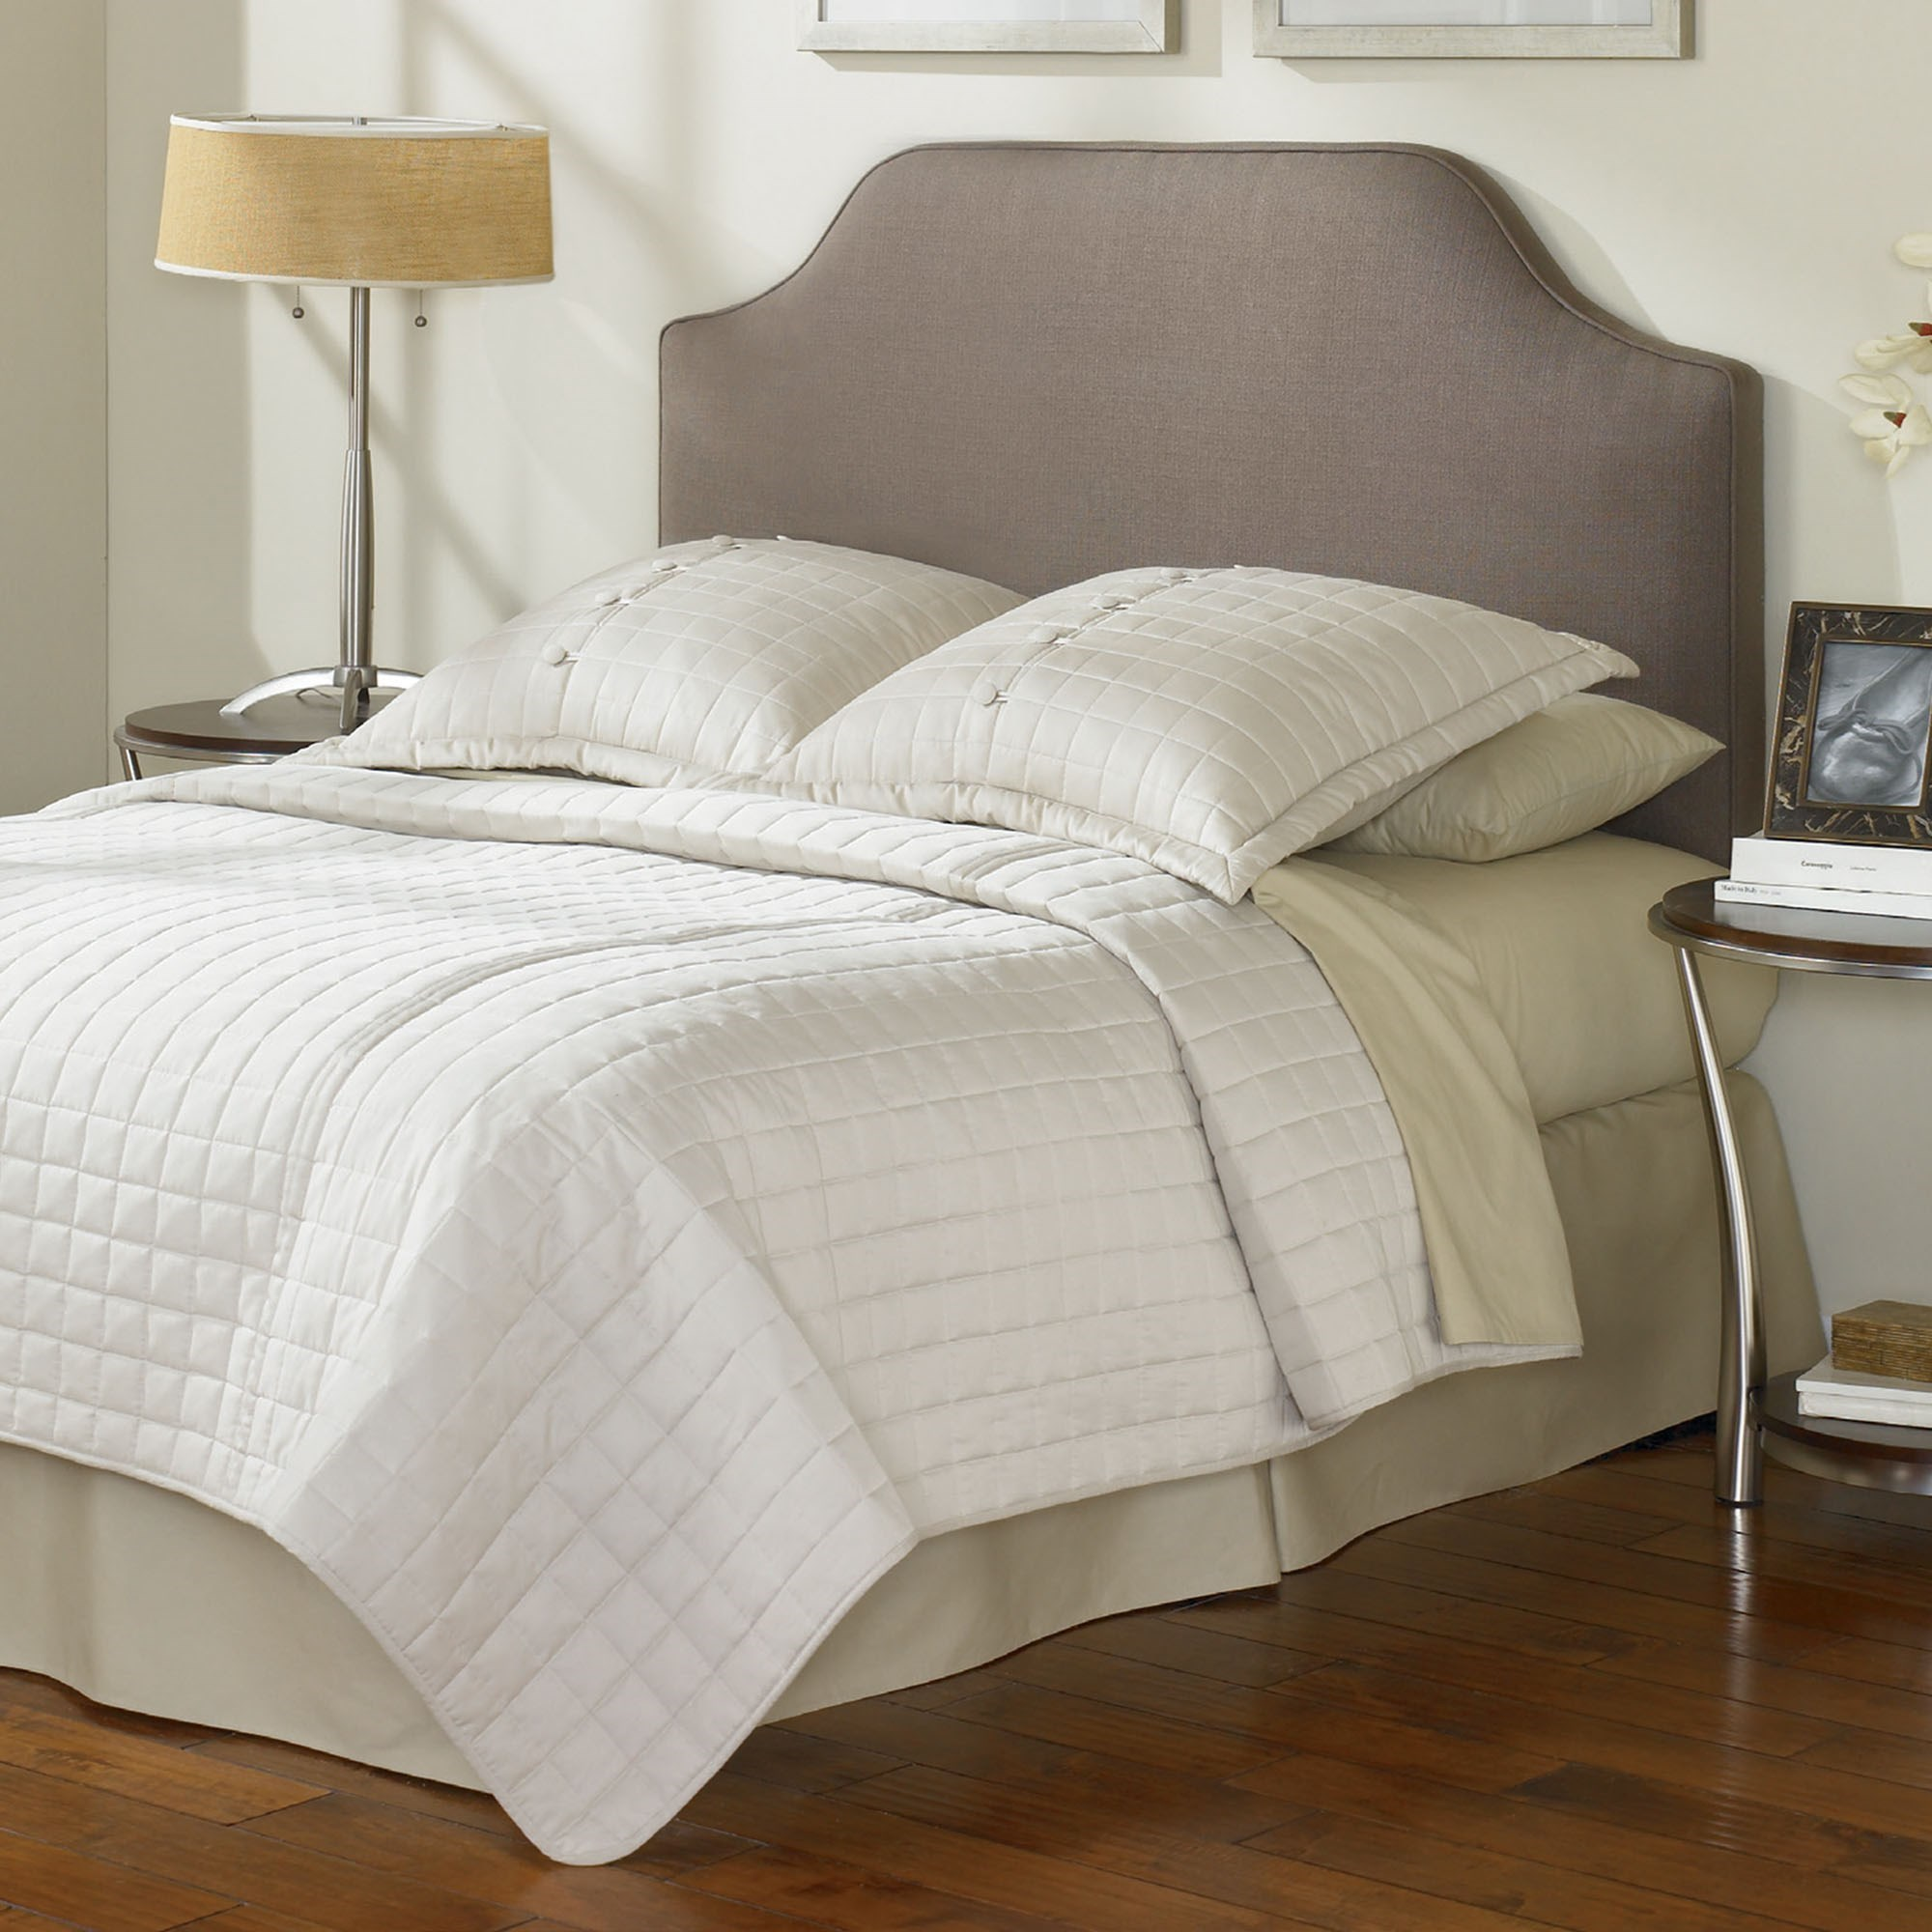 Fashion Bed Group Upholstered Headboards And Beds B72141